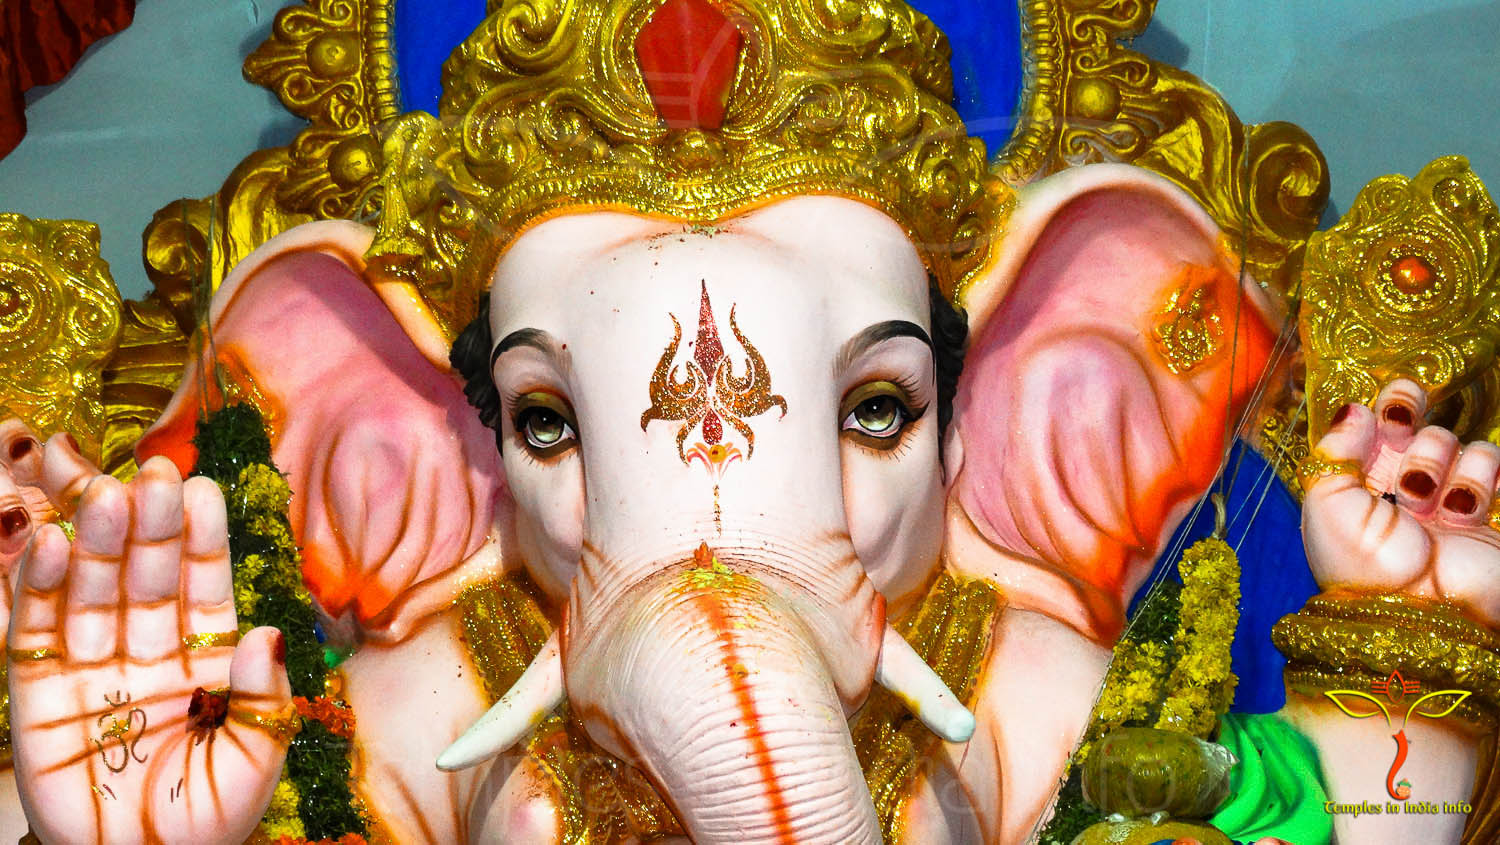 Lord Ganesh HD Images Wallpapers LATEST 2018 - All India Roundup Ganesh chaturthi 2018 pictures